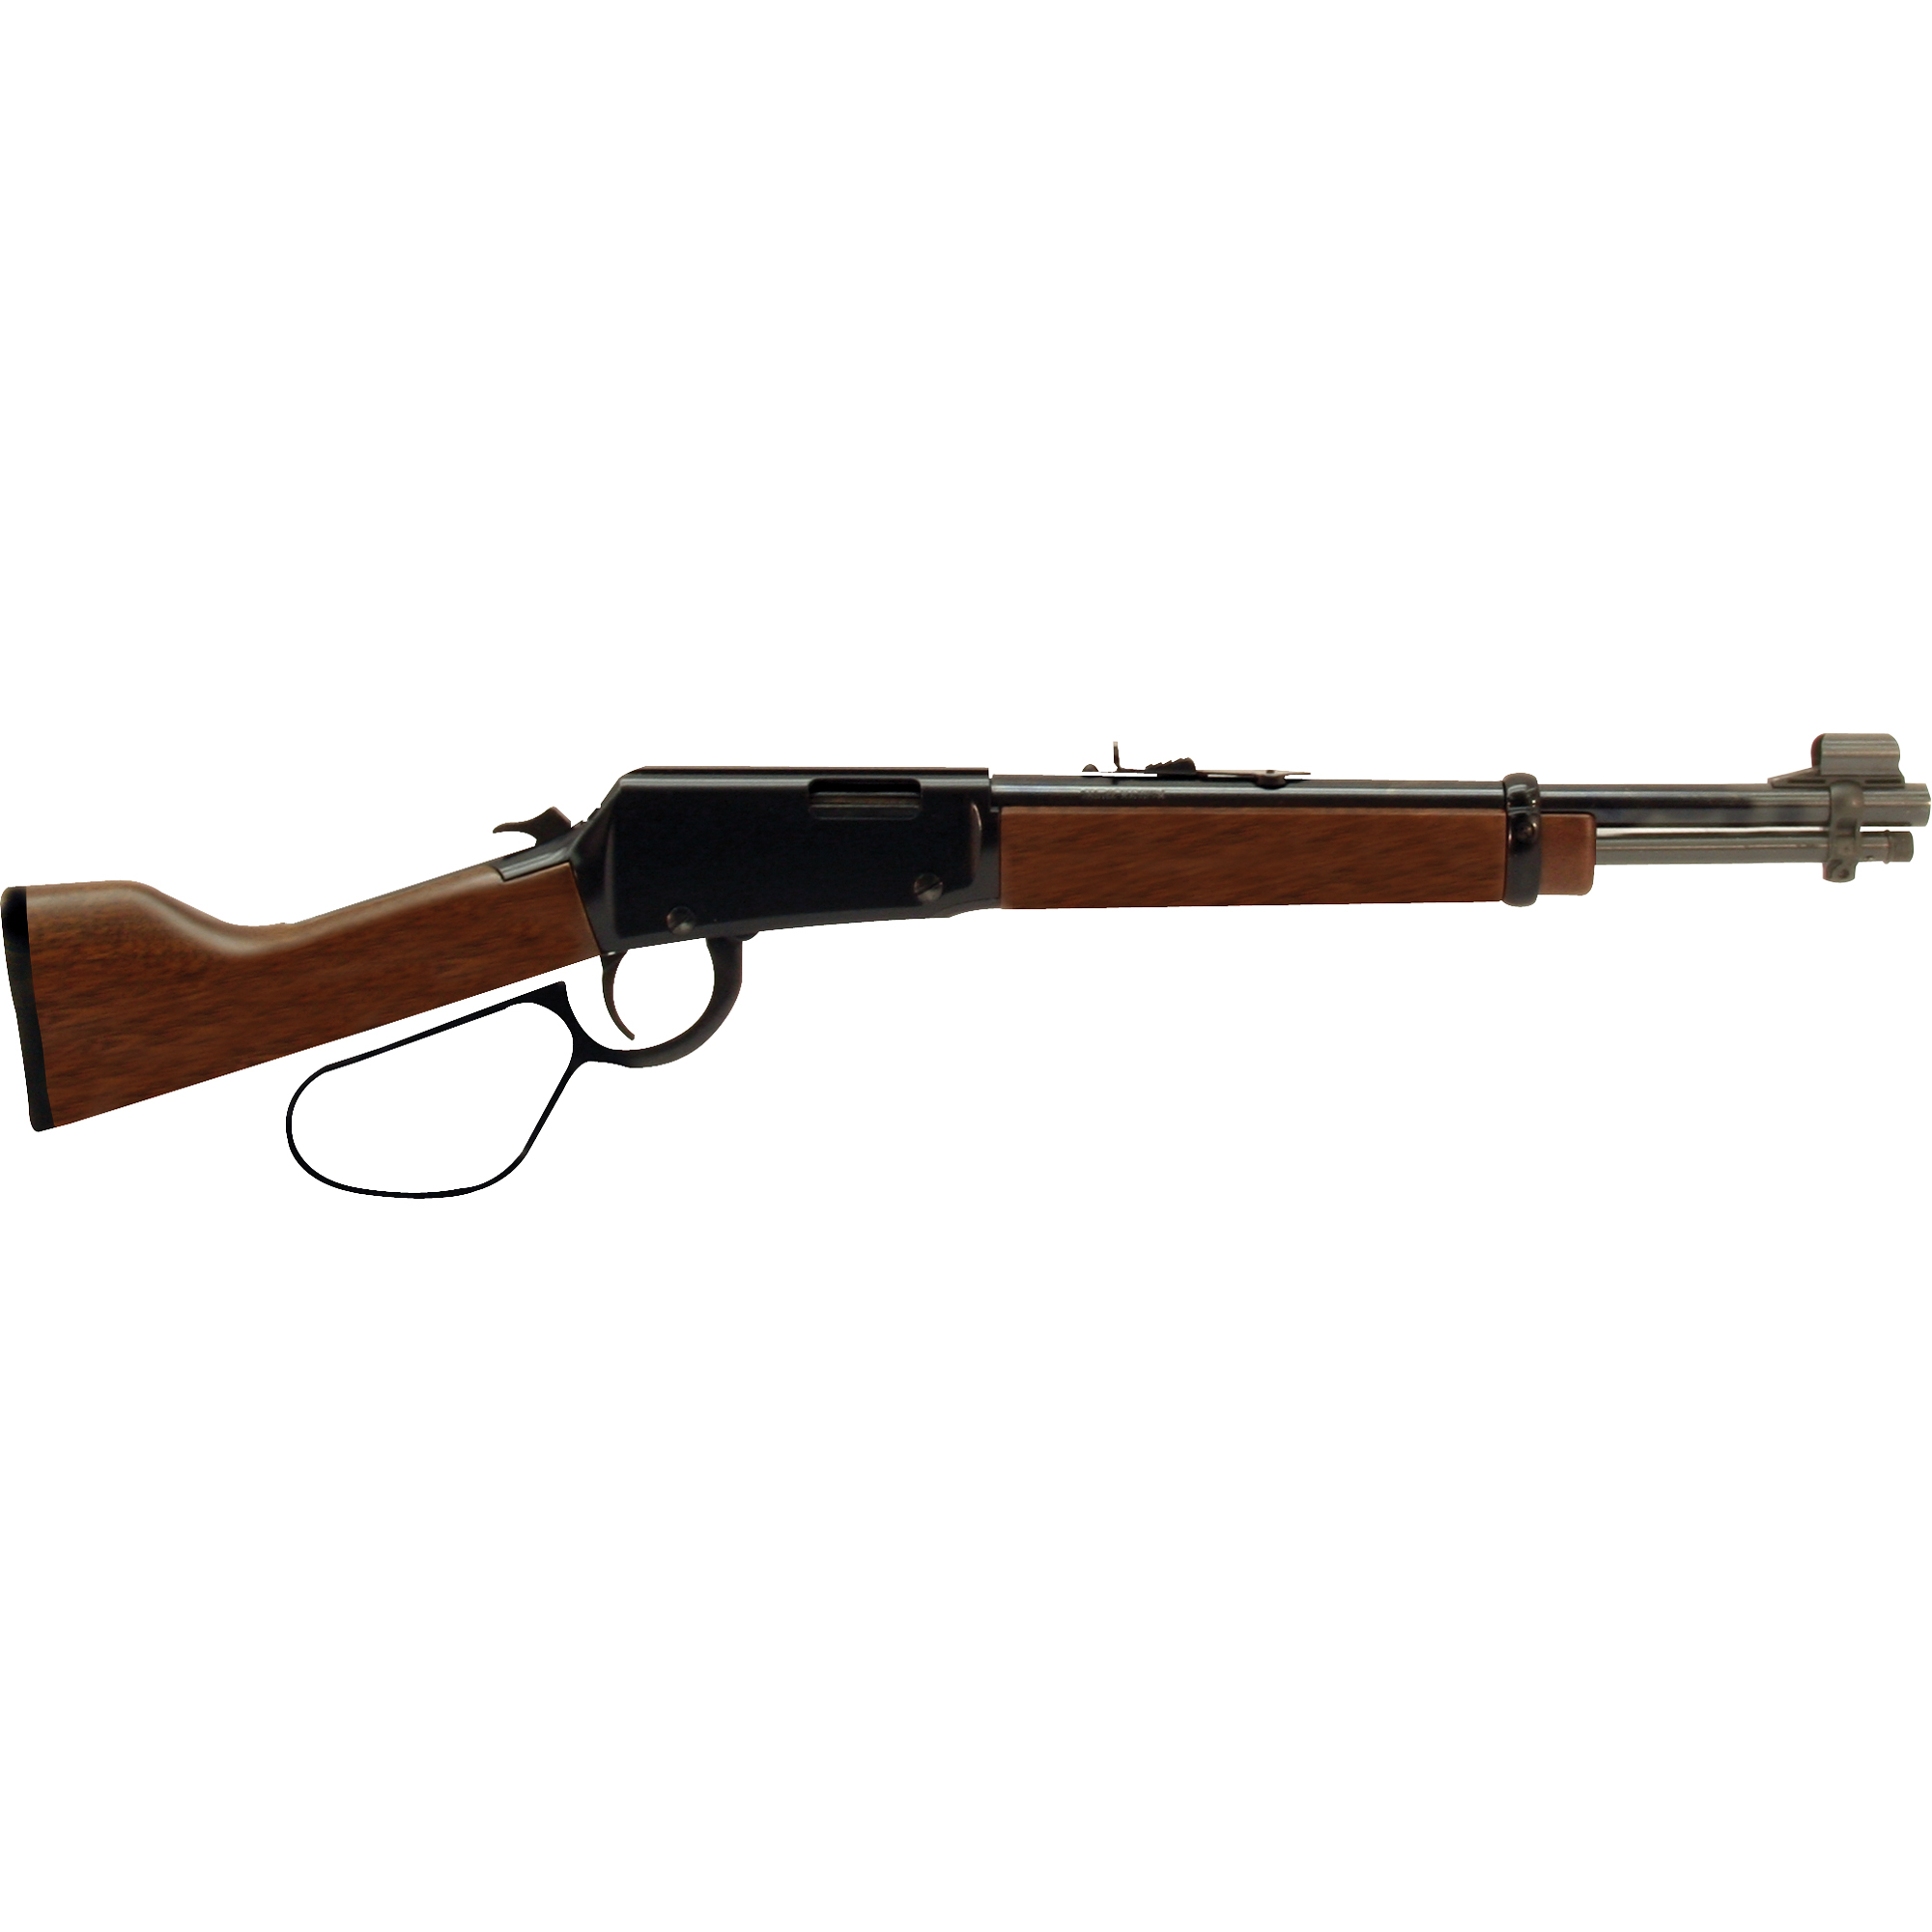 """This Henry Mare's Leg is a cut-down"""" modified variation of the model H001 Henry Lever Action. The large loop lever"""" coupled with the legendary crisp Henry action"""" makes it easy for you to enjoy those rapid-fire repeating shots Steve McQueen used to take down the bad guys."""